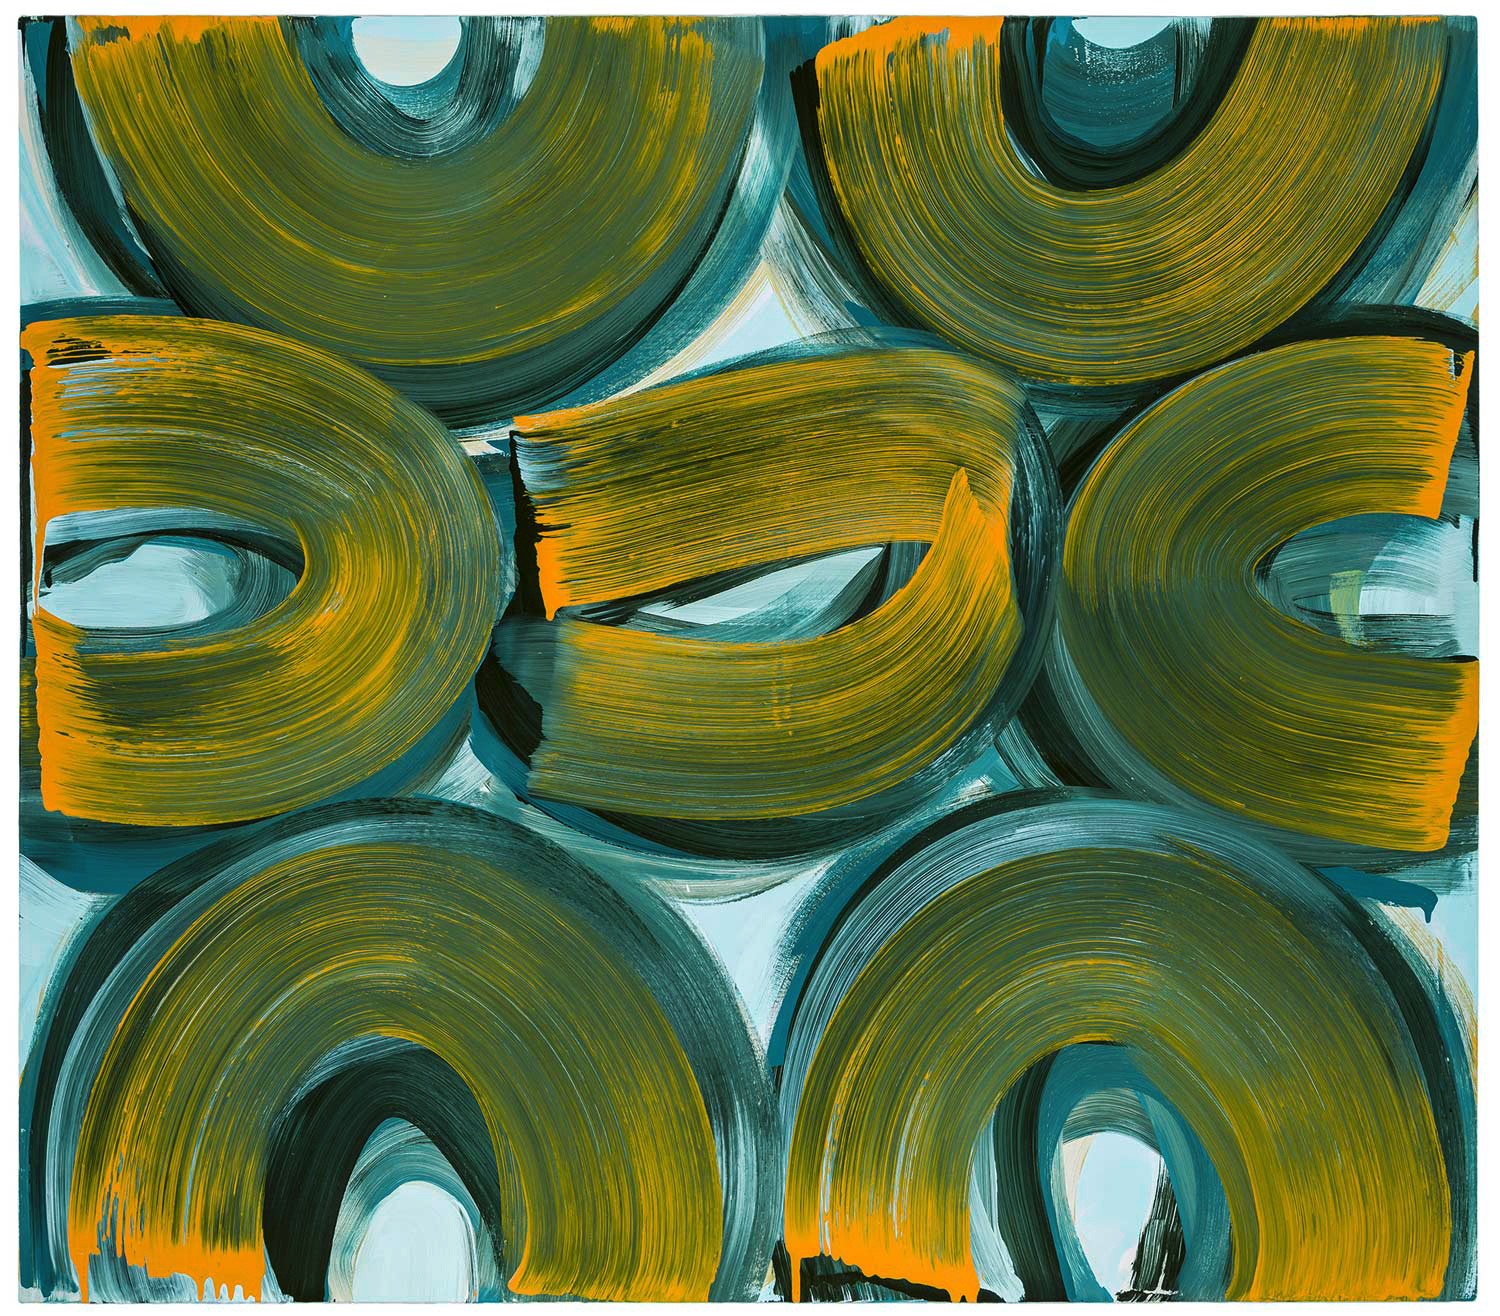 Linchpin , 2018 oil on canvas 44 x 50 in.  Available at 1stdibs through ODETTA Gallery:  https://www.1stdibs.com/art/paintings/abstract-paintings/anne-russinof-anne-russinof-lynchpin-2018-oil-on-canvas-44-x-50-inches/id-a_4429711/